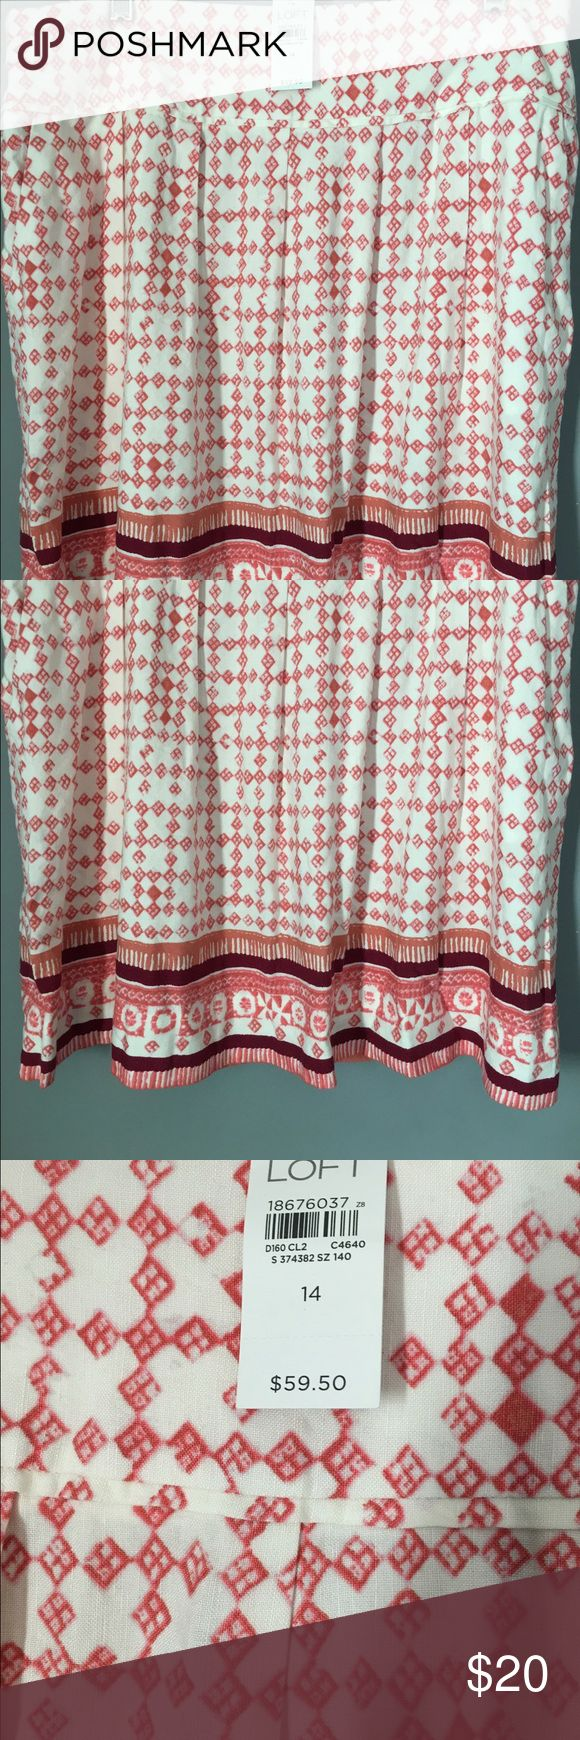 """ANN TAYLOR LOFT NWT Skirt Sz 14 NEW WITH TAGS Ann Taylor Loft Skirt Sz 14. Gorgeous linen/rayon blend. Cream background with muted coral and Bordeaux colors. Features pockets, back zipper and hook and eye closure. Measures 19 1/2"""" long. Please ask any and all questions prior to purchase. Ann Taylor Skirts Midi"""